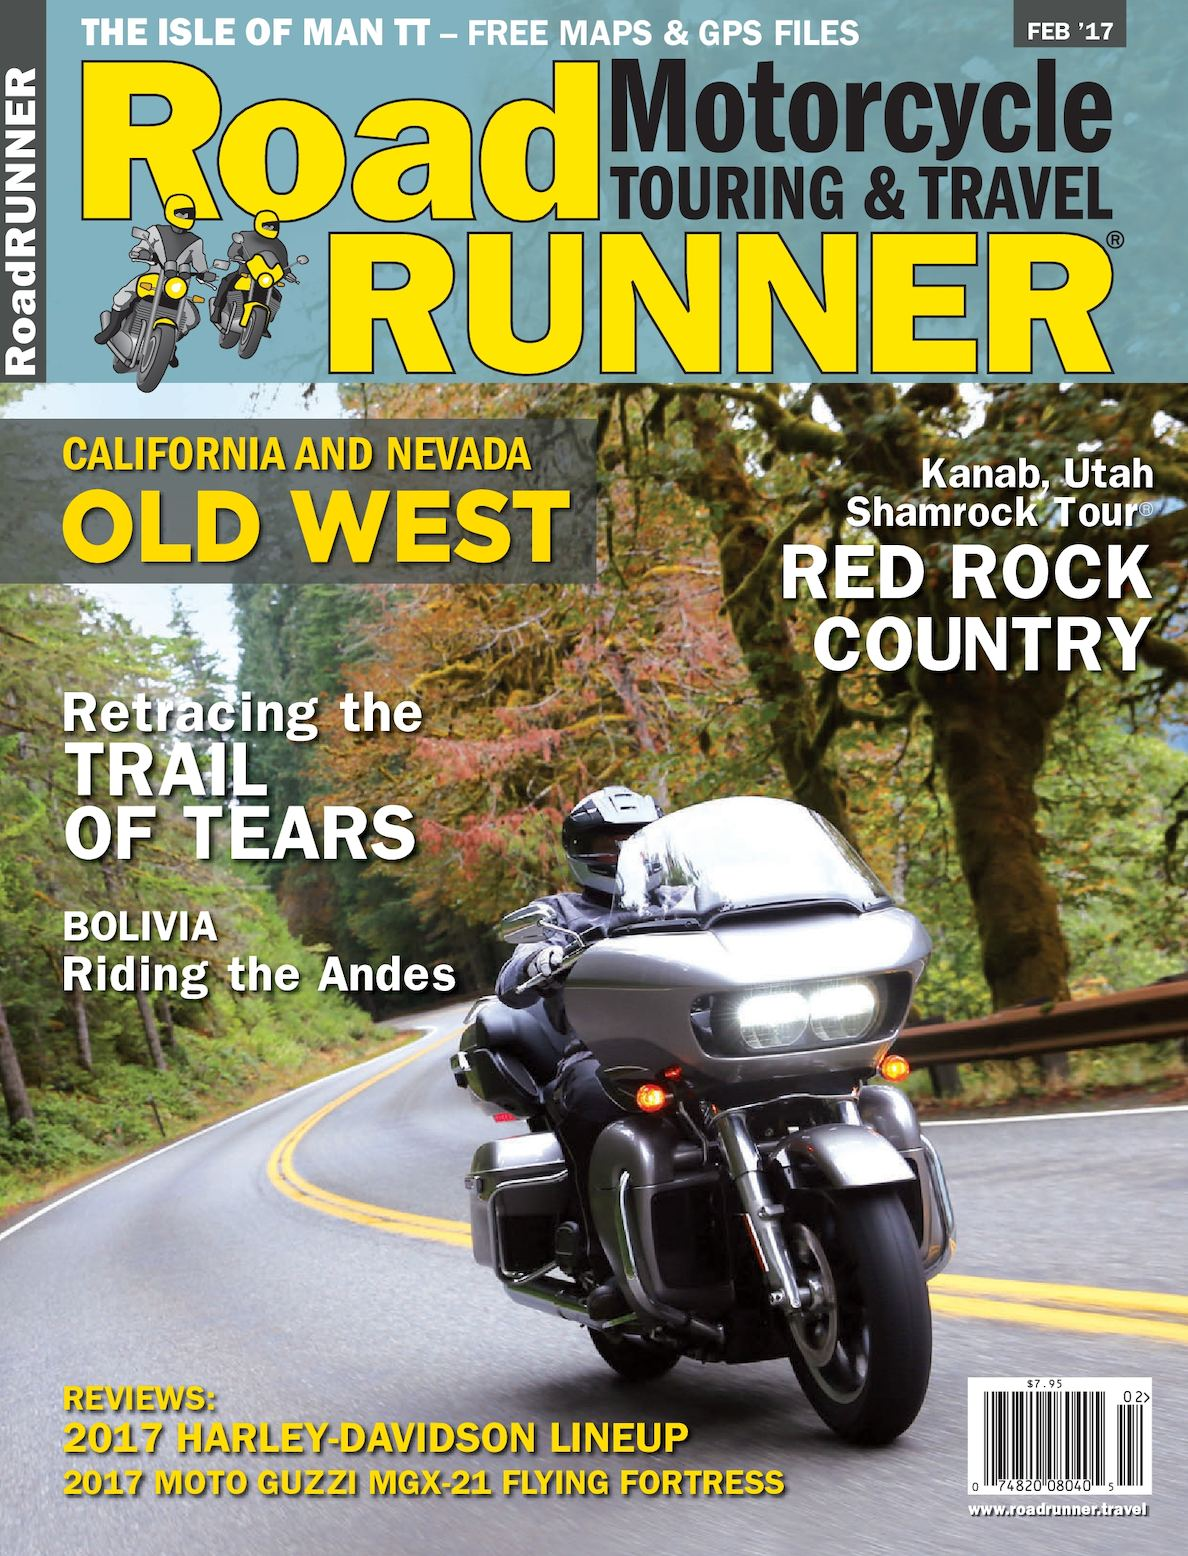 c0c908480a Calaméo - RoadRUNNER Magazine January February 2017 Preview